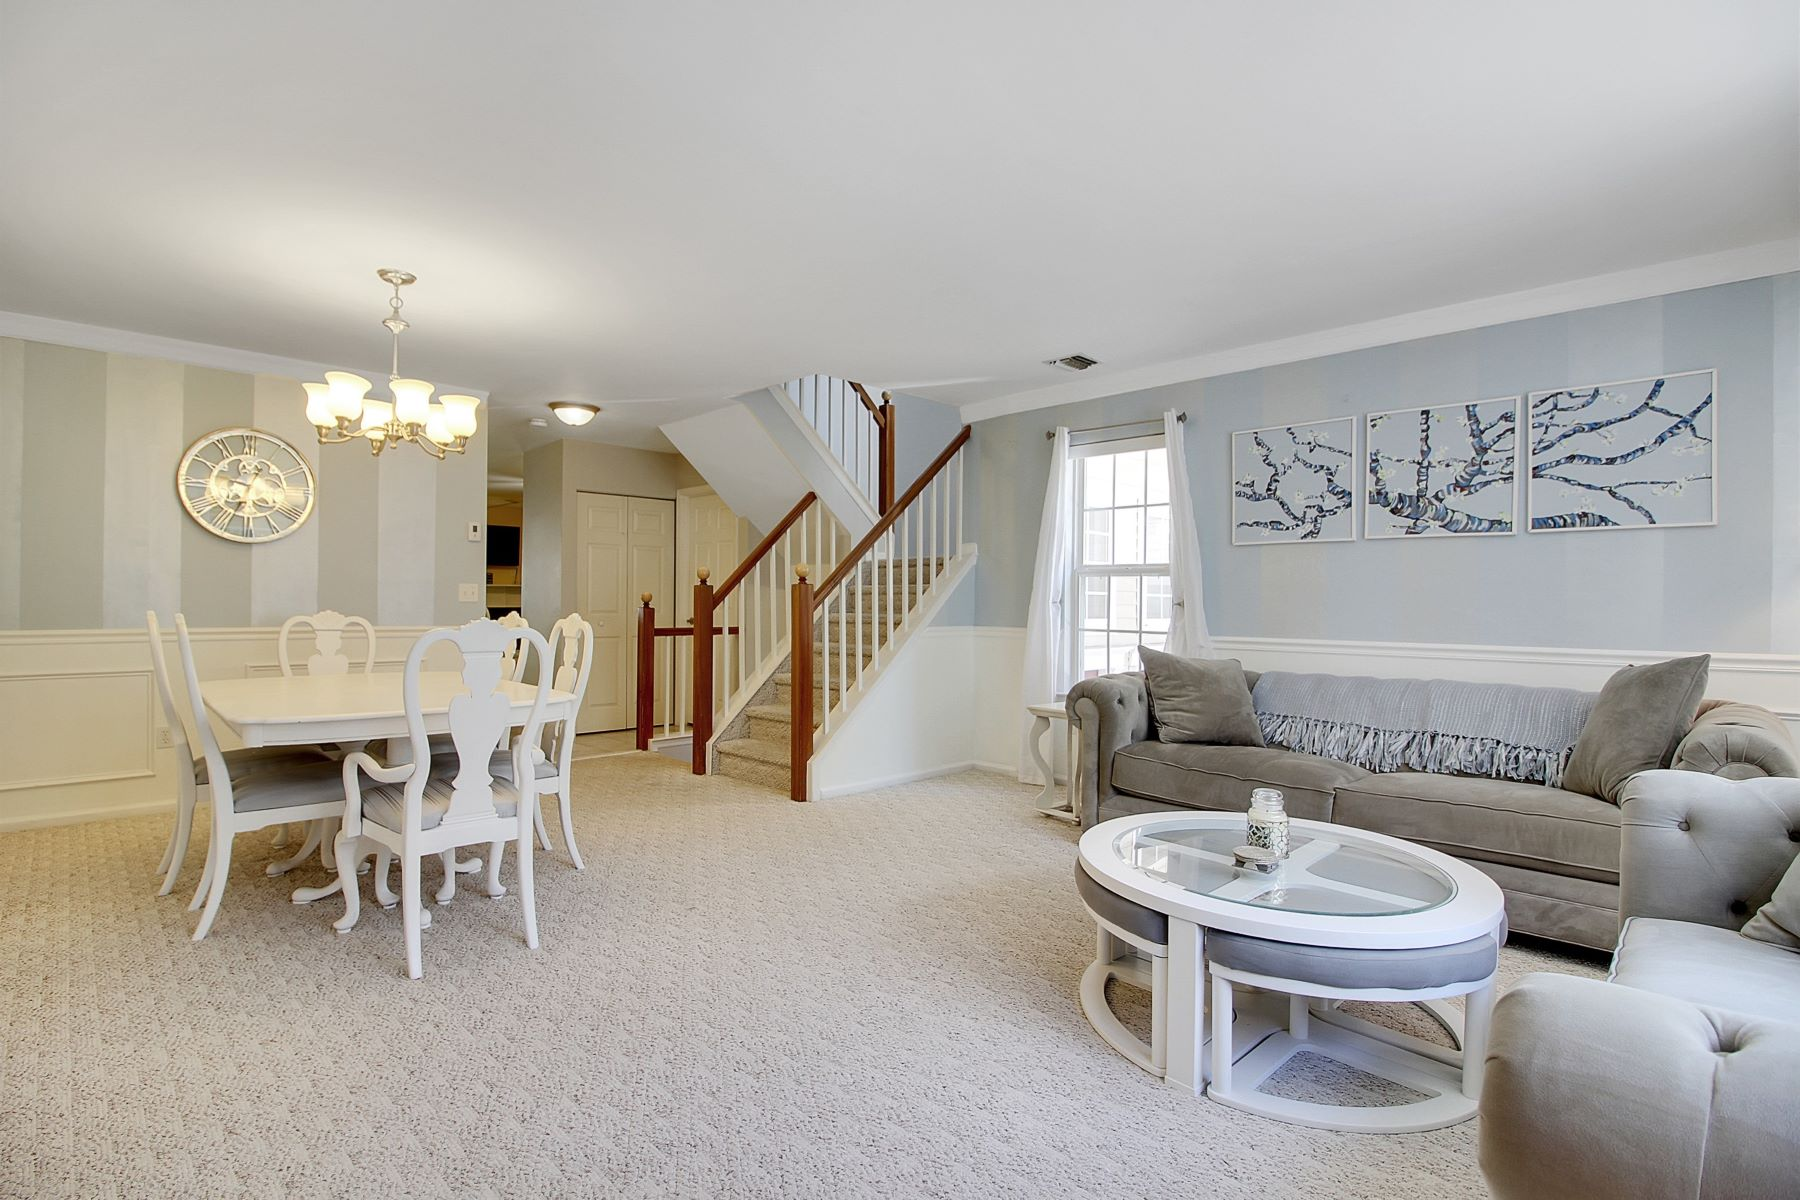 Townhouse for Sale at Distinctive Home With Fantastic Style 3006 Vantage Court, Denville, New Jersey 07834 United States